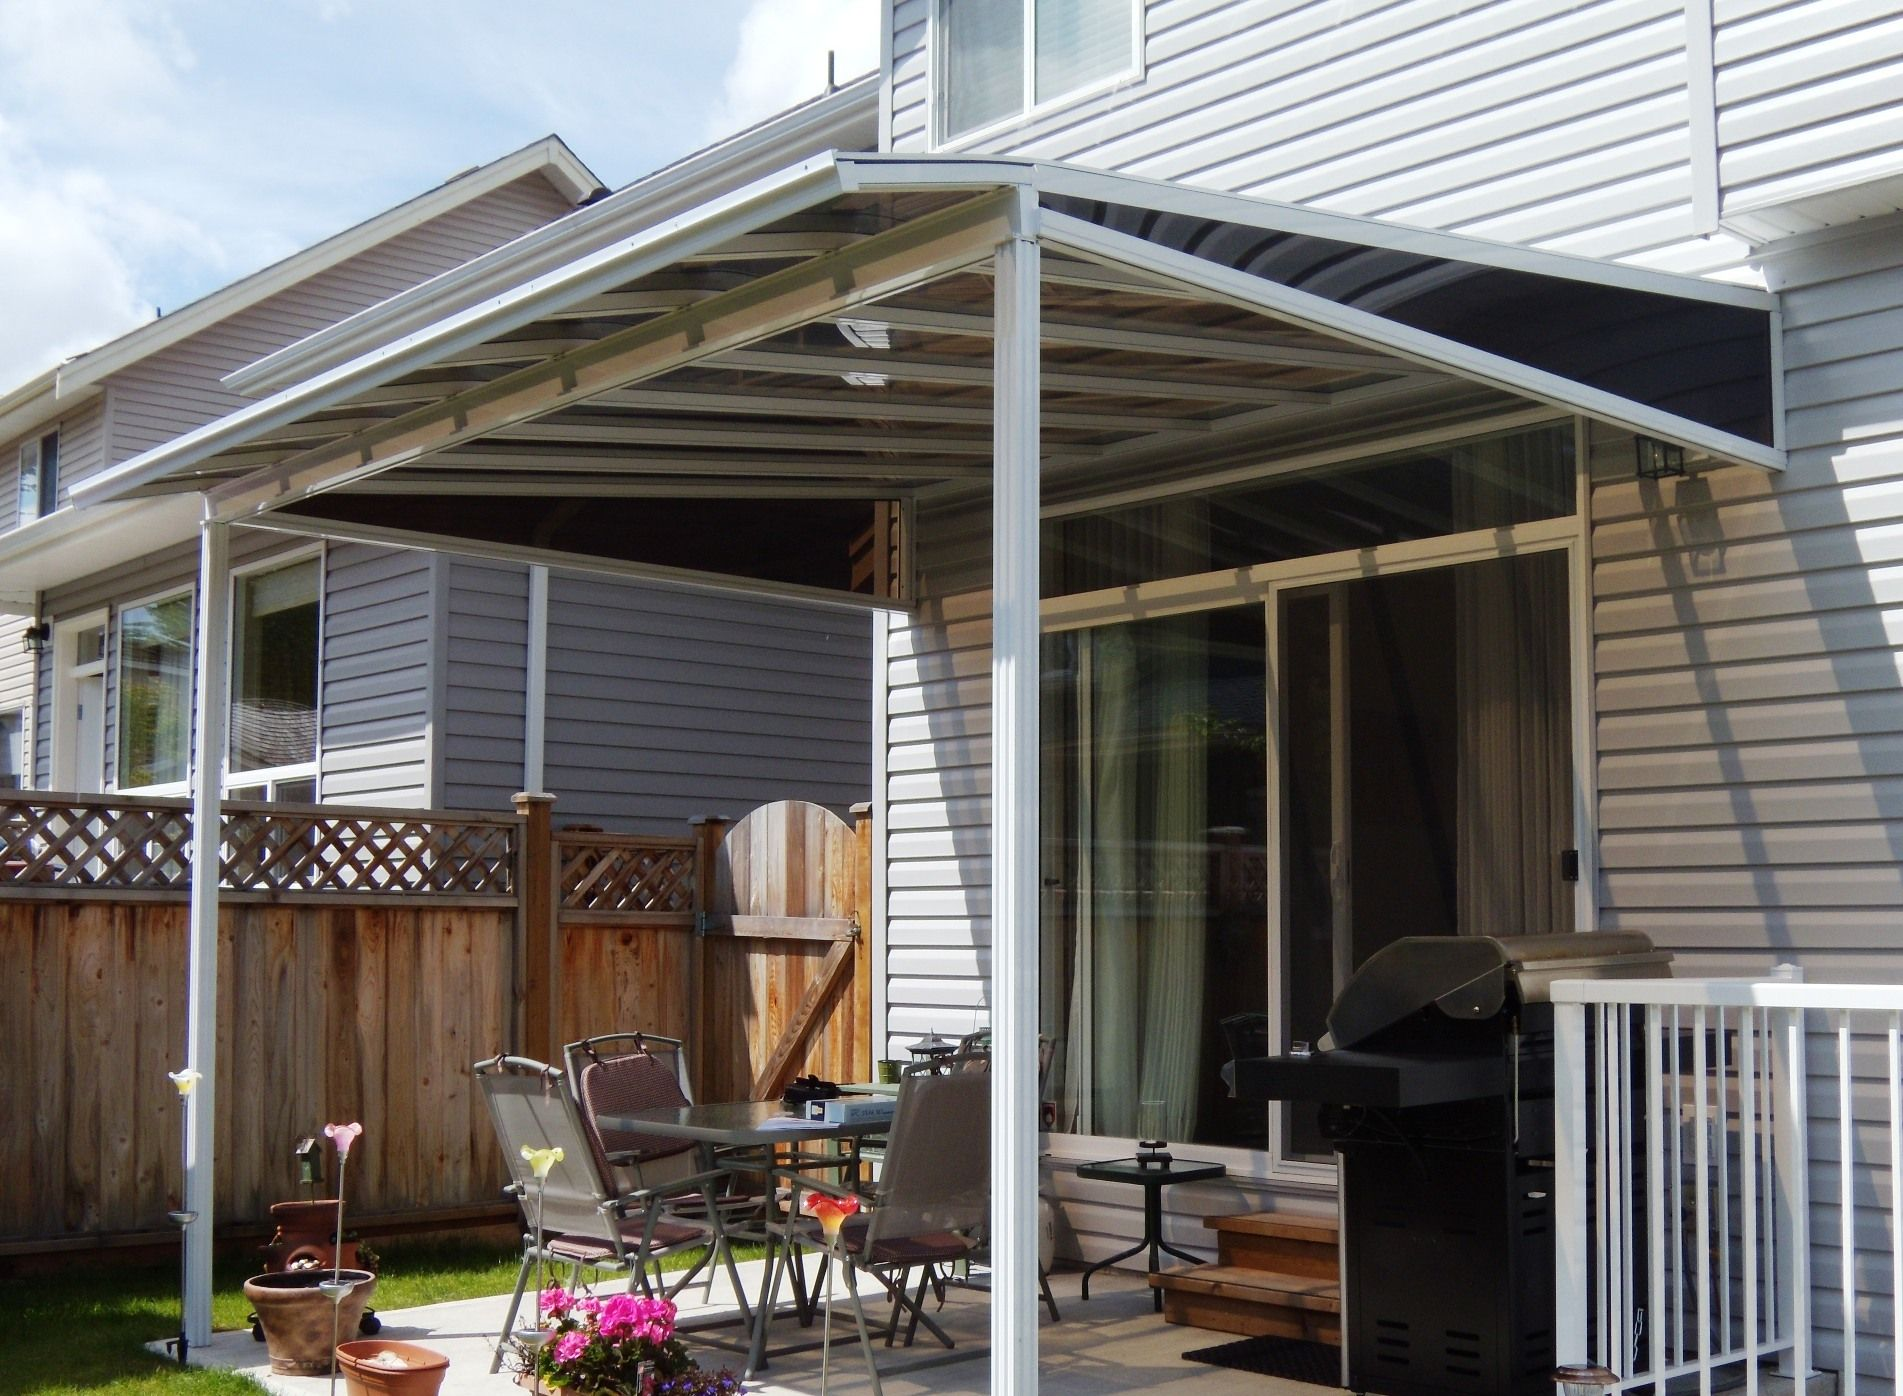 patio covers ideas | Patio Covers | Covered patio, Patio ... on Patio Cover Ideas Cheap id=28490